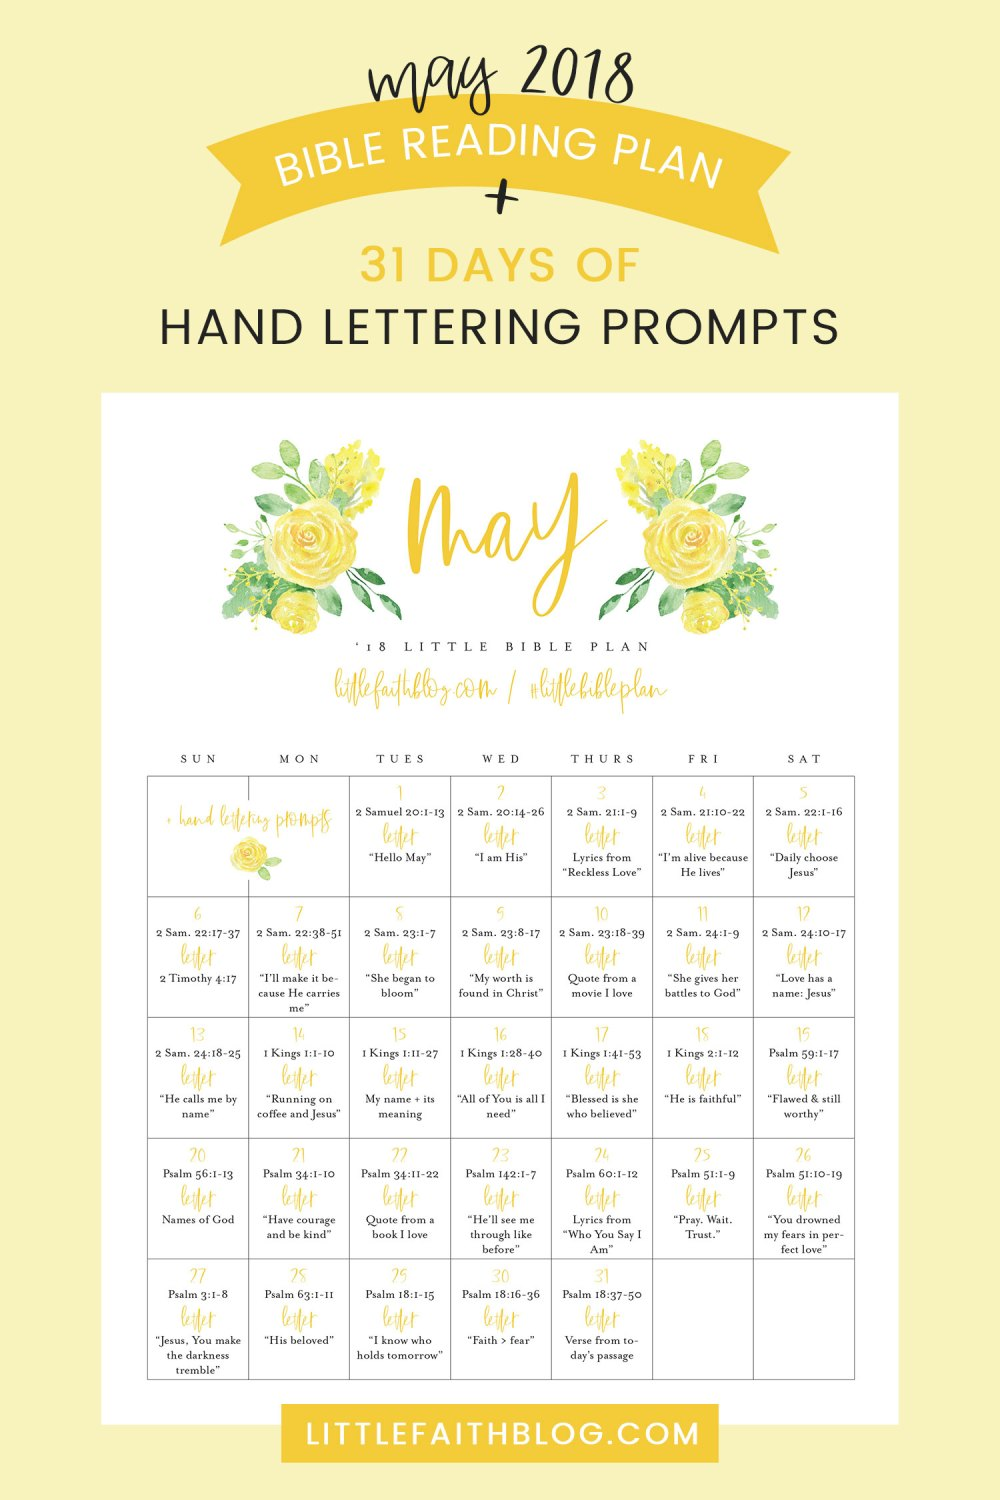 May 2018 Bible Reading Plan + 31 Days of Hand Lettering Prompts!